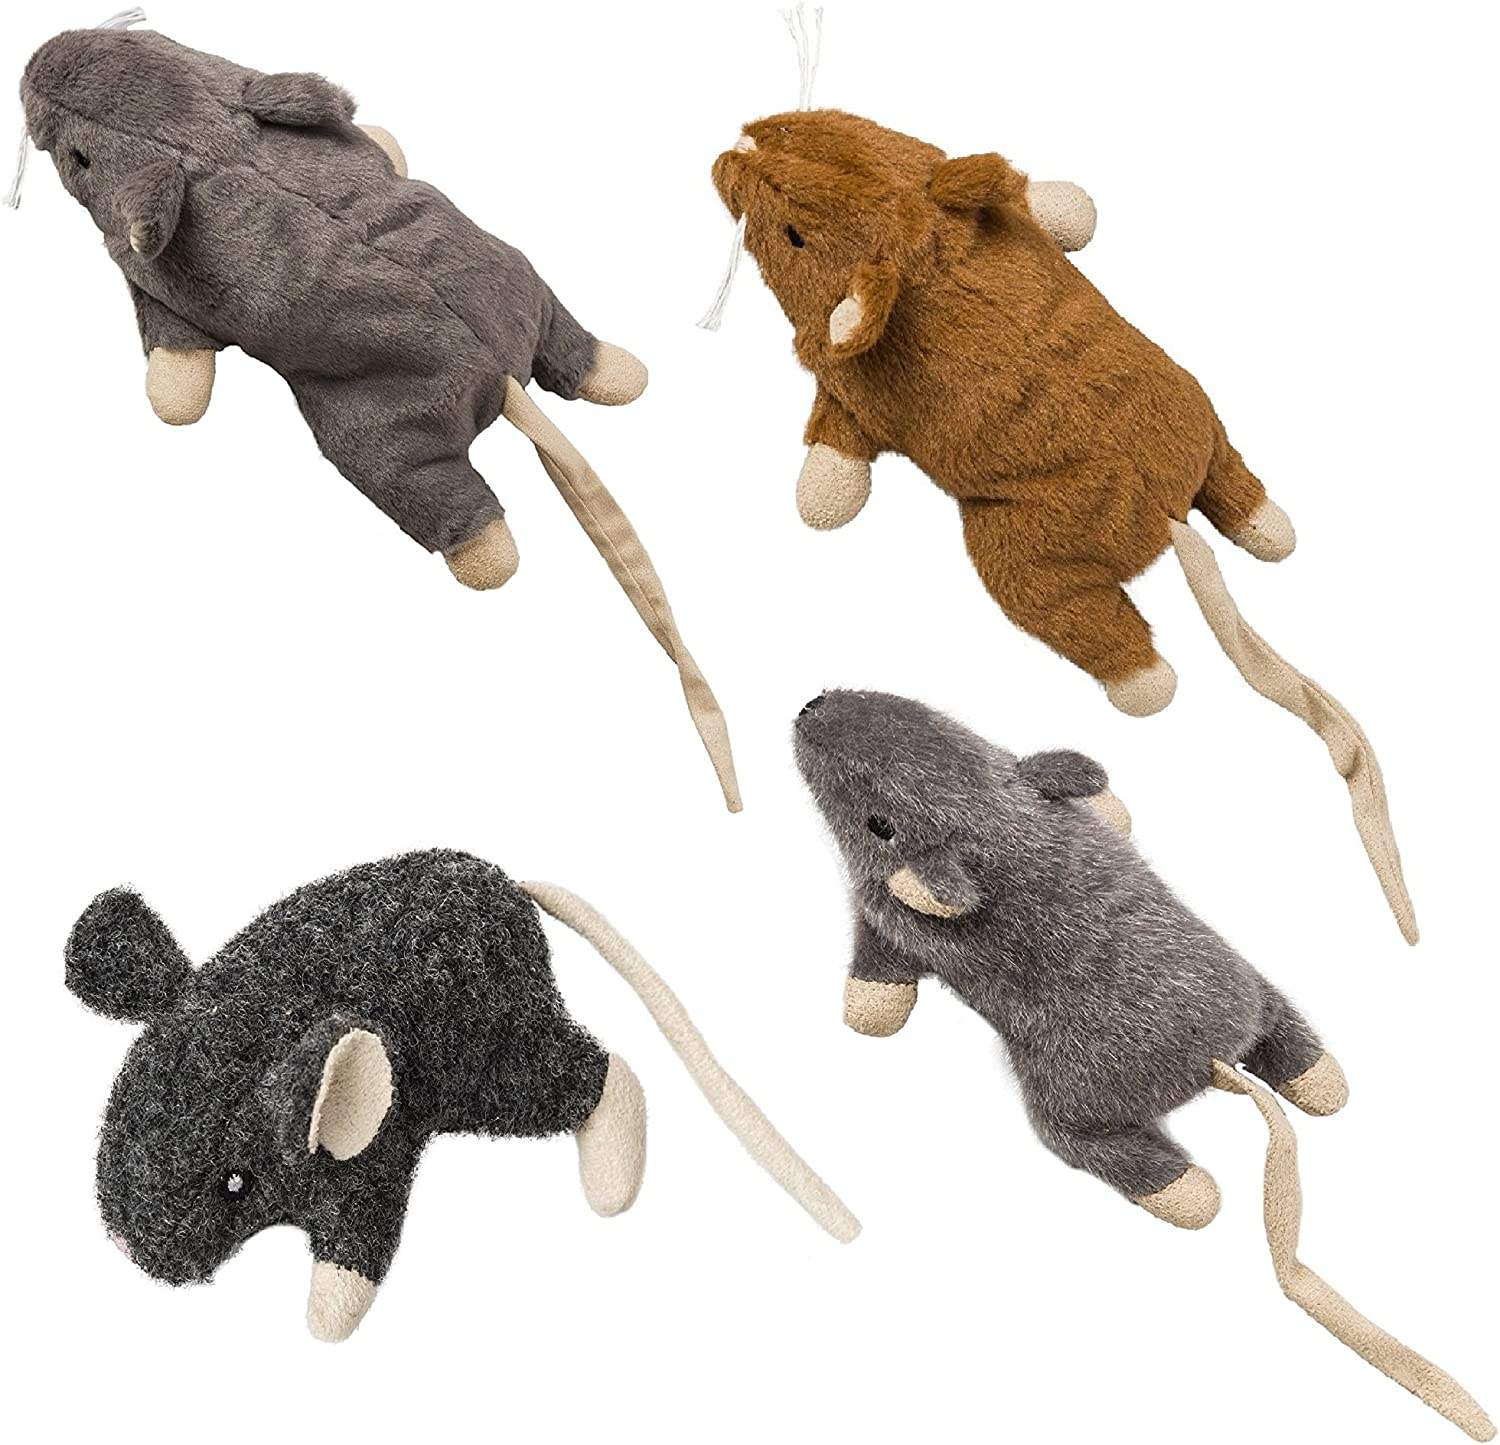 Ethical Pets Super Mouse Sam, Big Mouse Bertha, Wool Mouse Willie, and Flat Mouse Frankie Catnip Toys (Bundle)